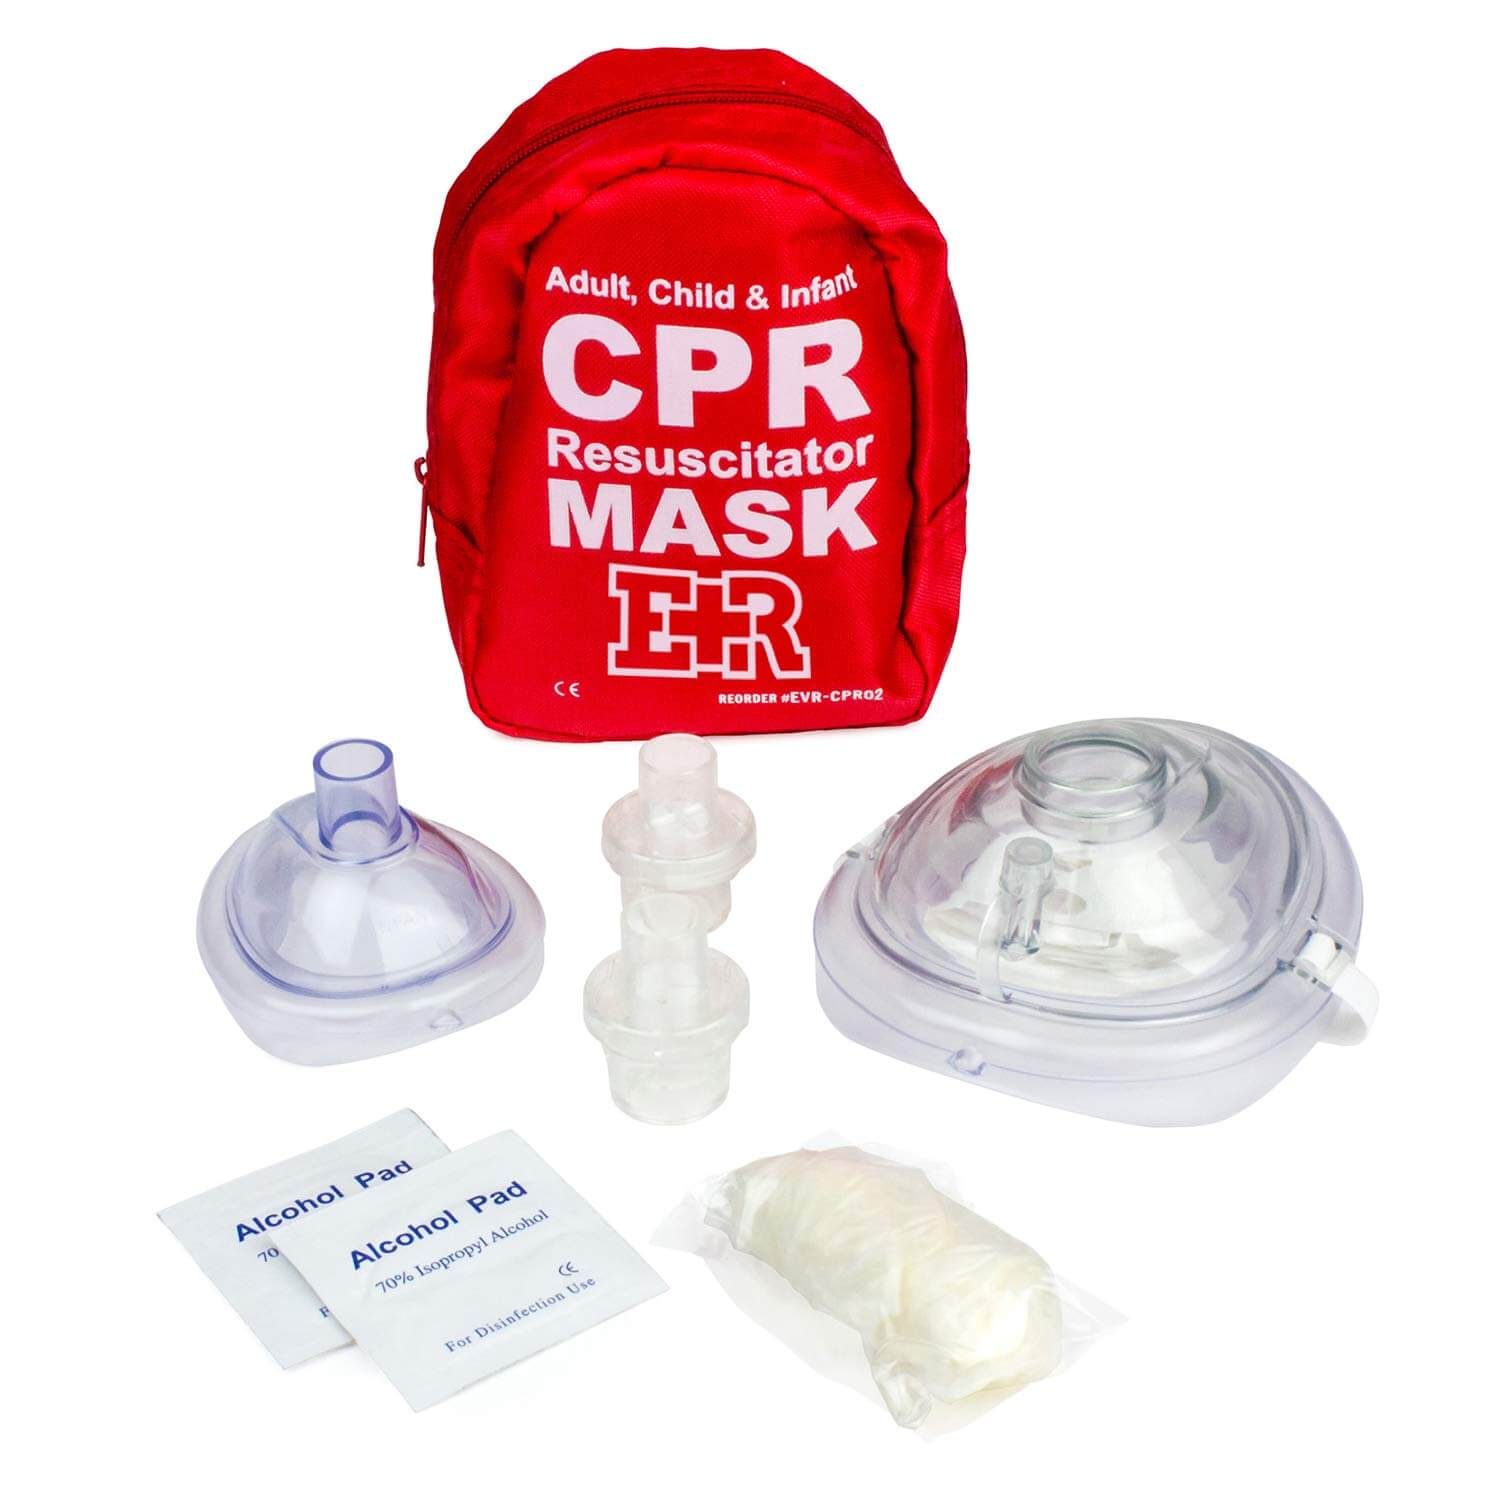 Adult, child and Infant CPR Resuscitation Mask